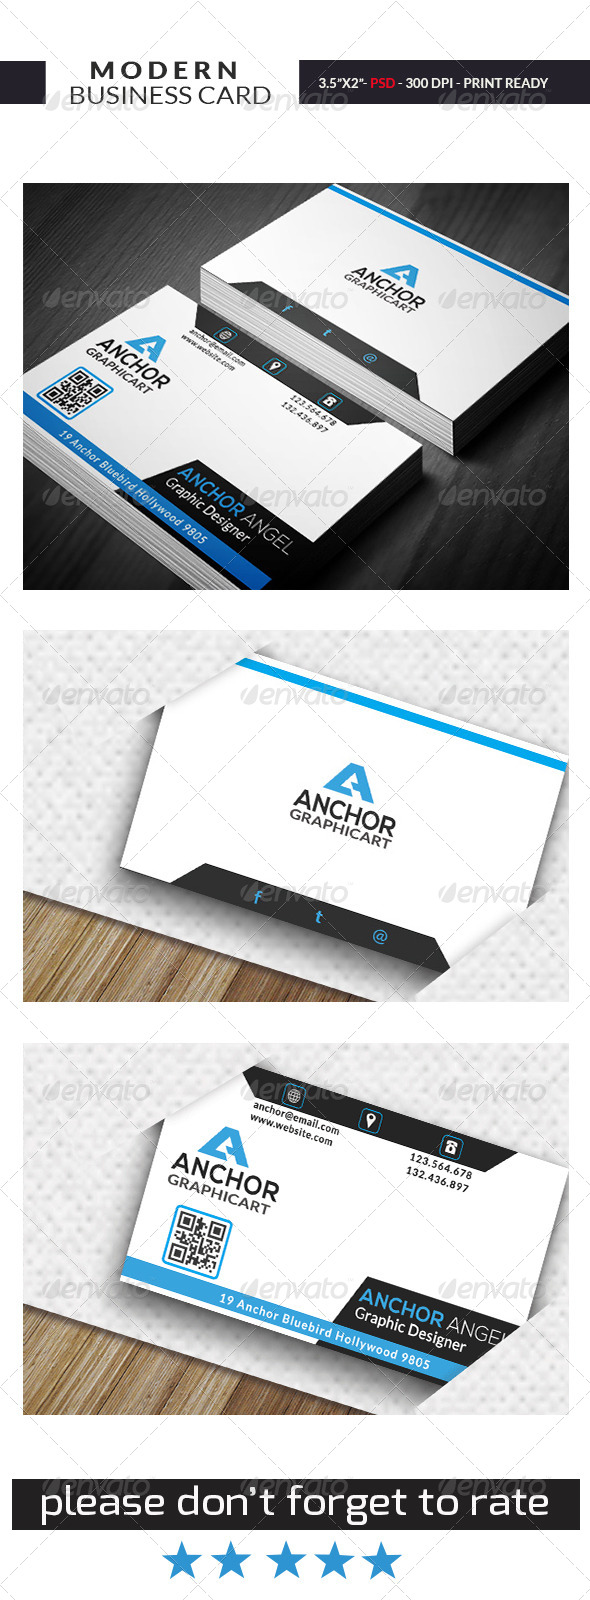 Modern Business Card 07 - Business Cards Print Templates